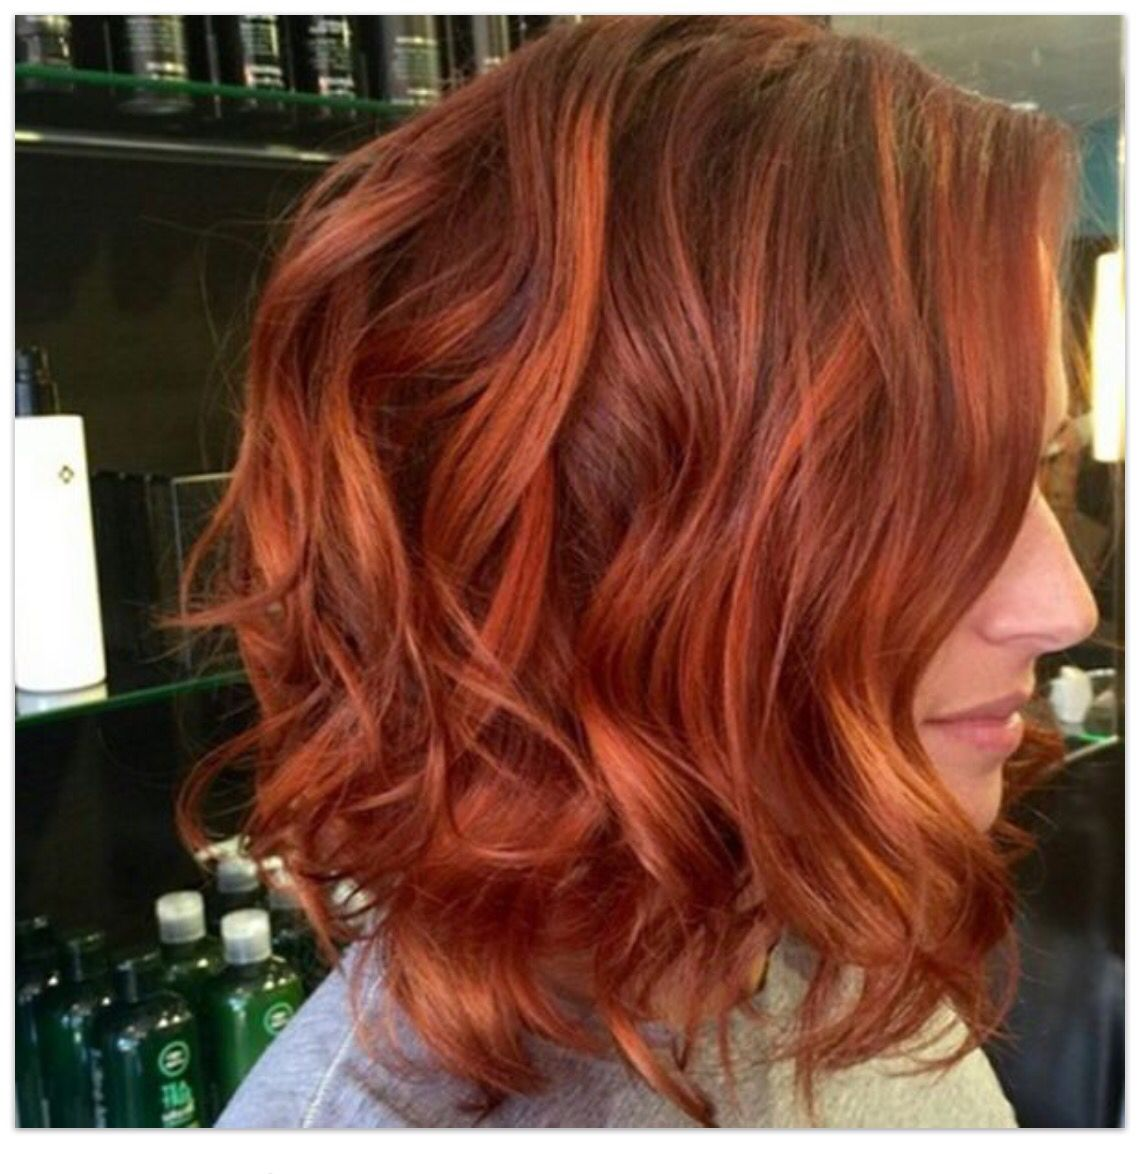 Beautiful Red Red Hair Pinterest Hair Coloring Red Hair And